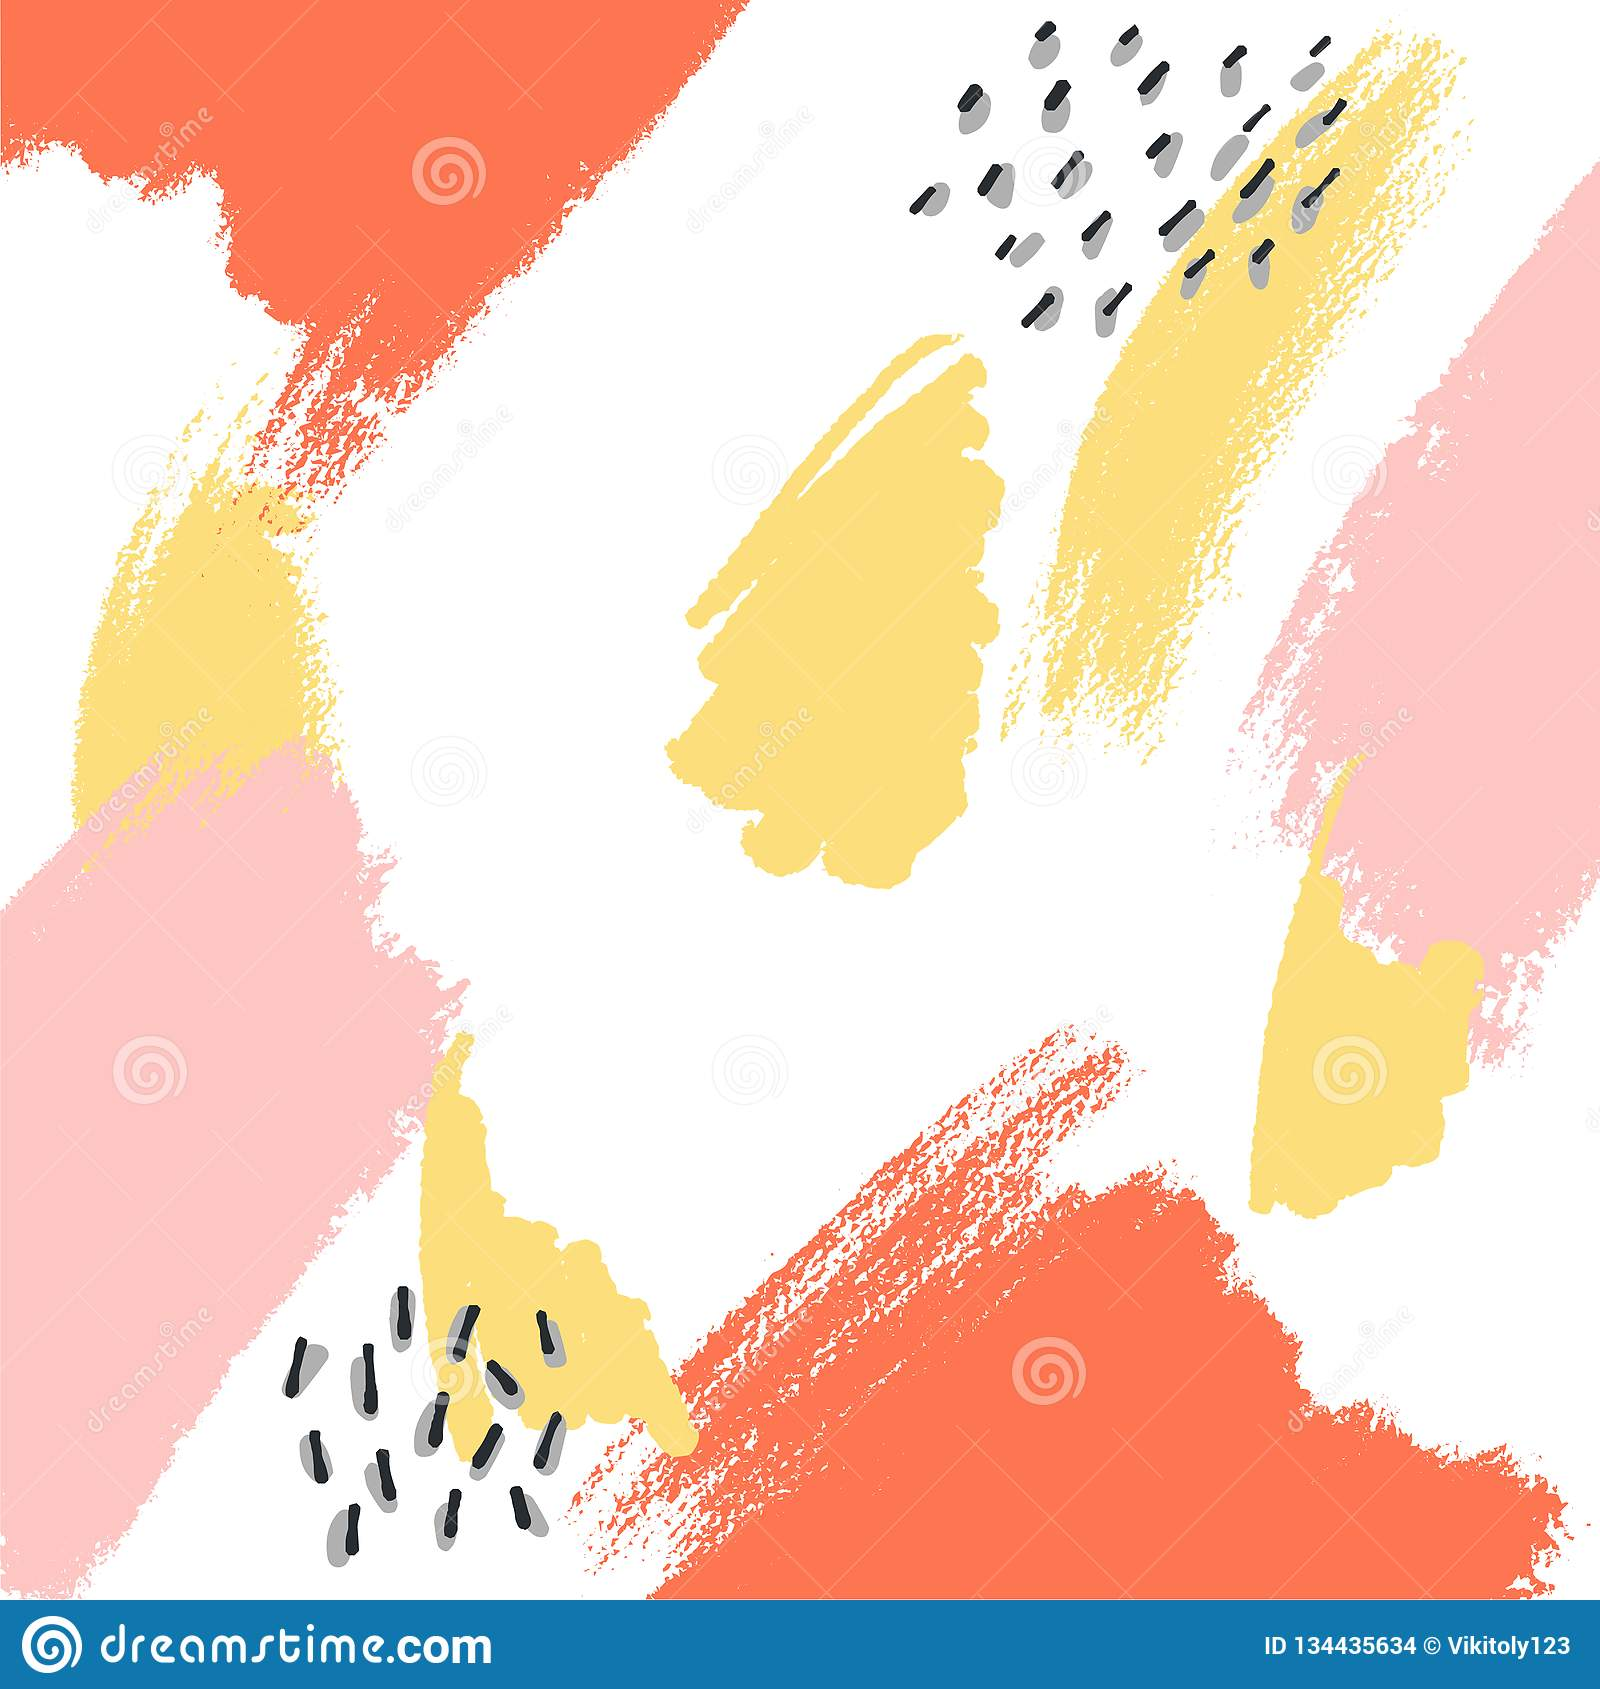 Soft Pastel Bright Colored Calm Abstract Background For